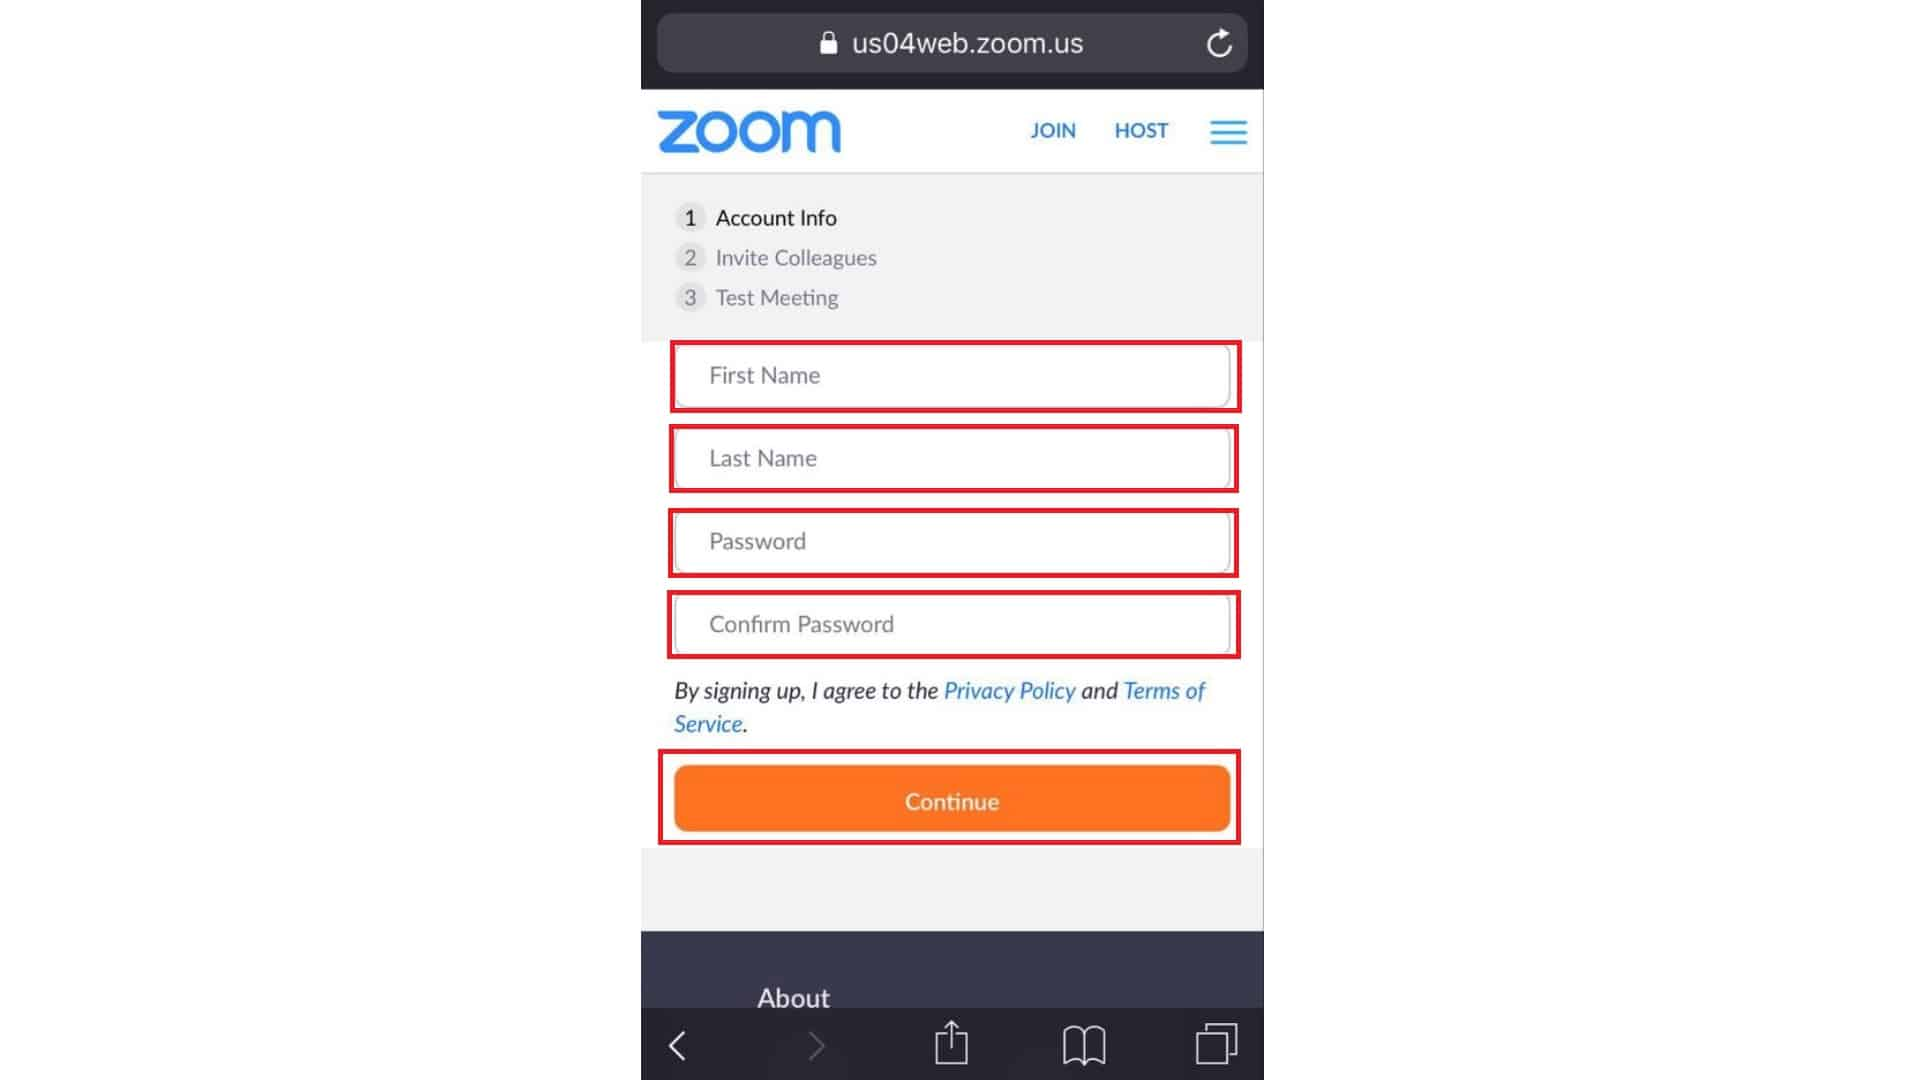 Sign-Up-for-Zoom-Video-Conferencing-2020-guide